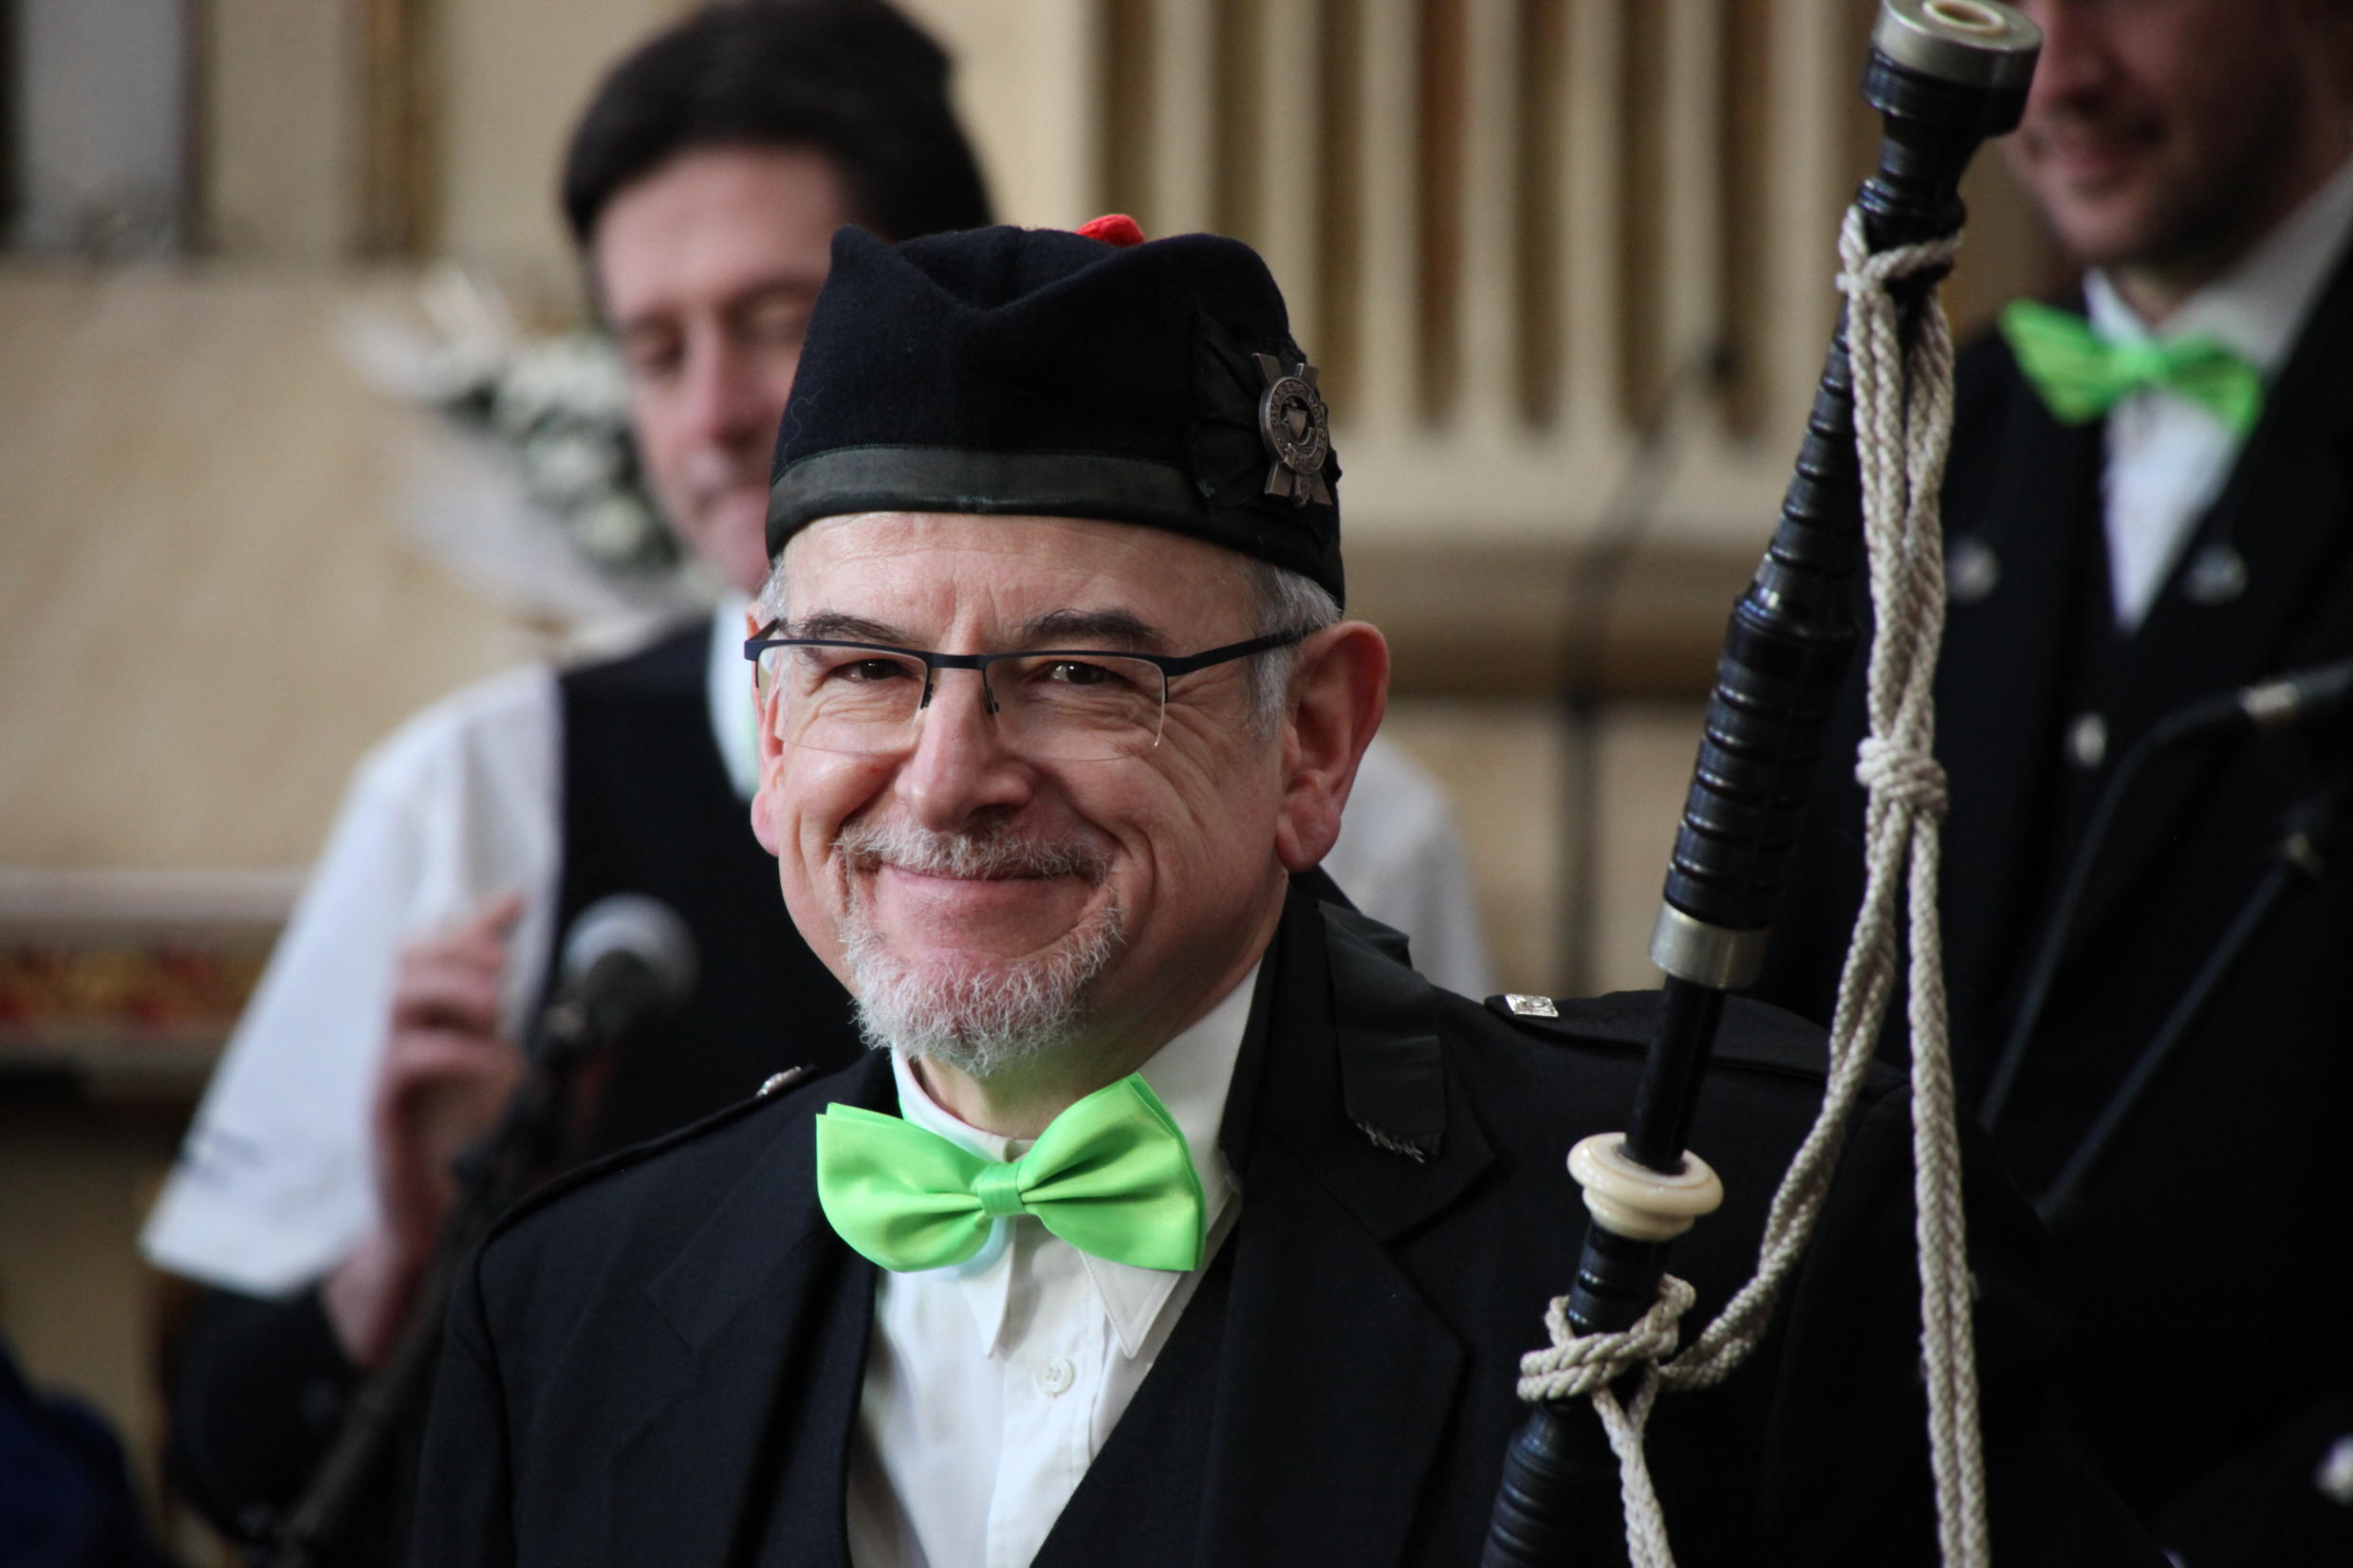 Scottish bagpipes are ingrained in Irish culture, and provide music for the procession